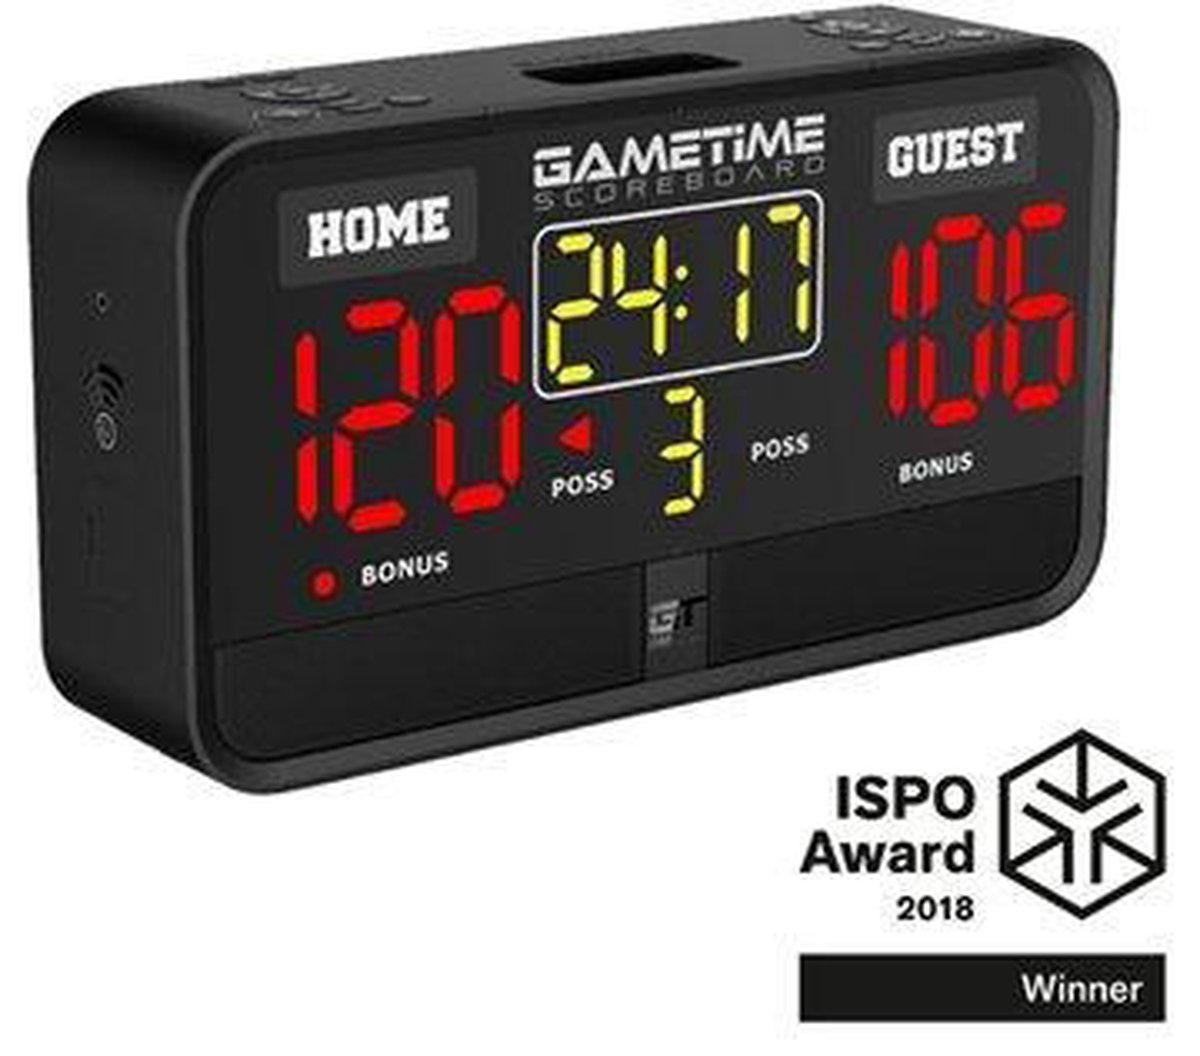 Gametimer scorebord draagbaar - Scorebord - Voor indoor en outdoor - Audio player